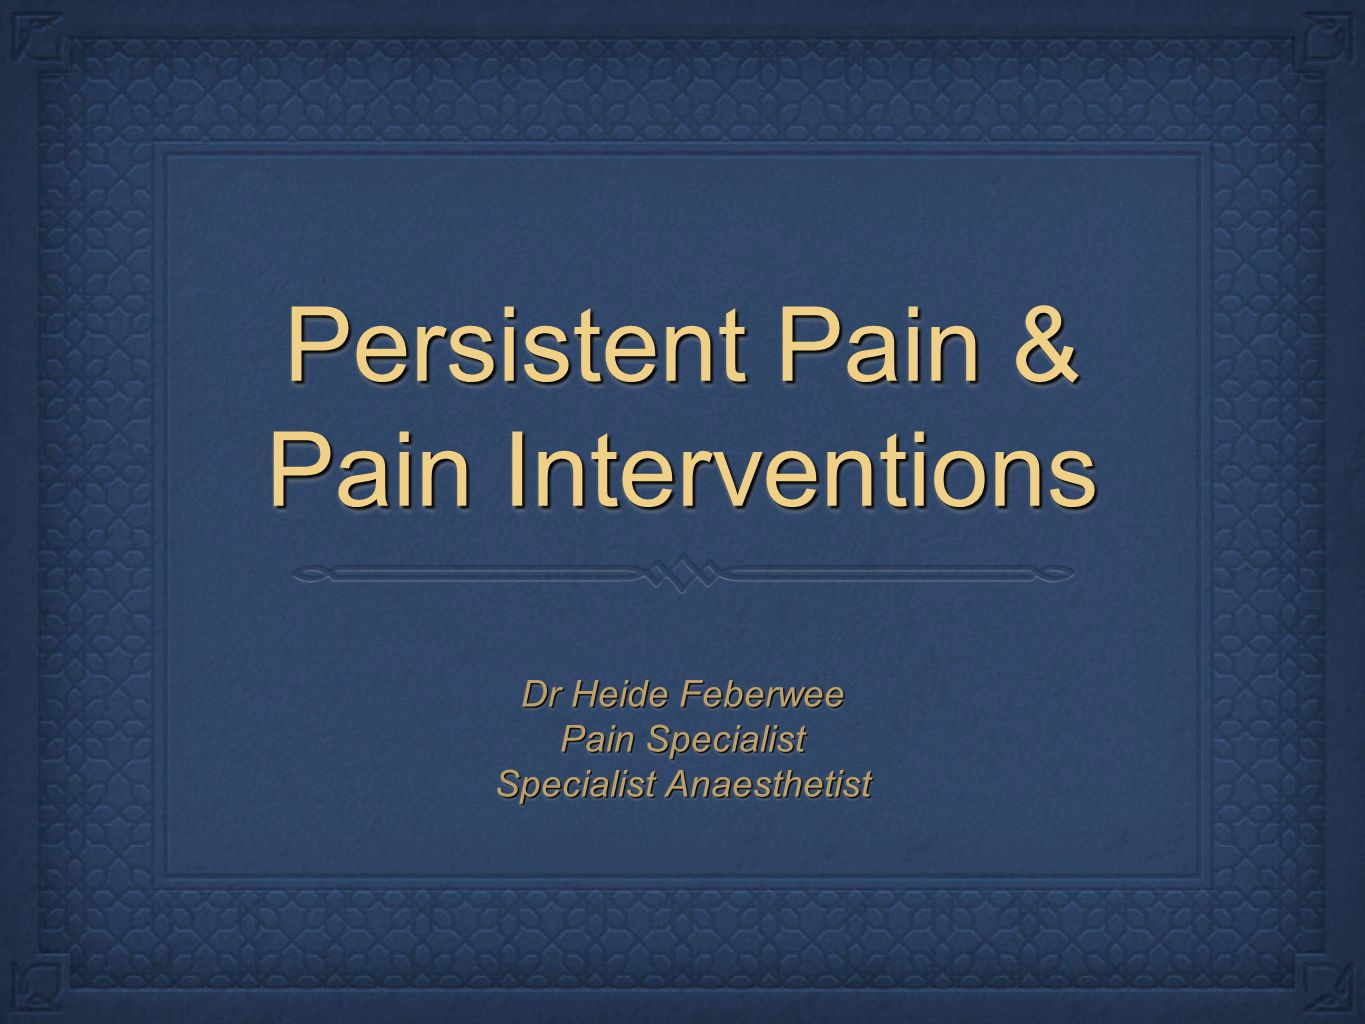 Persistent Pain & Pain Interventions